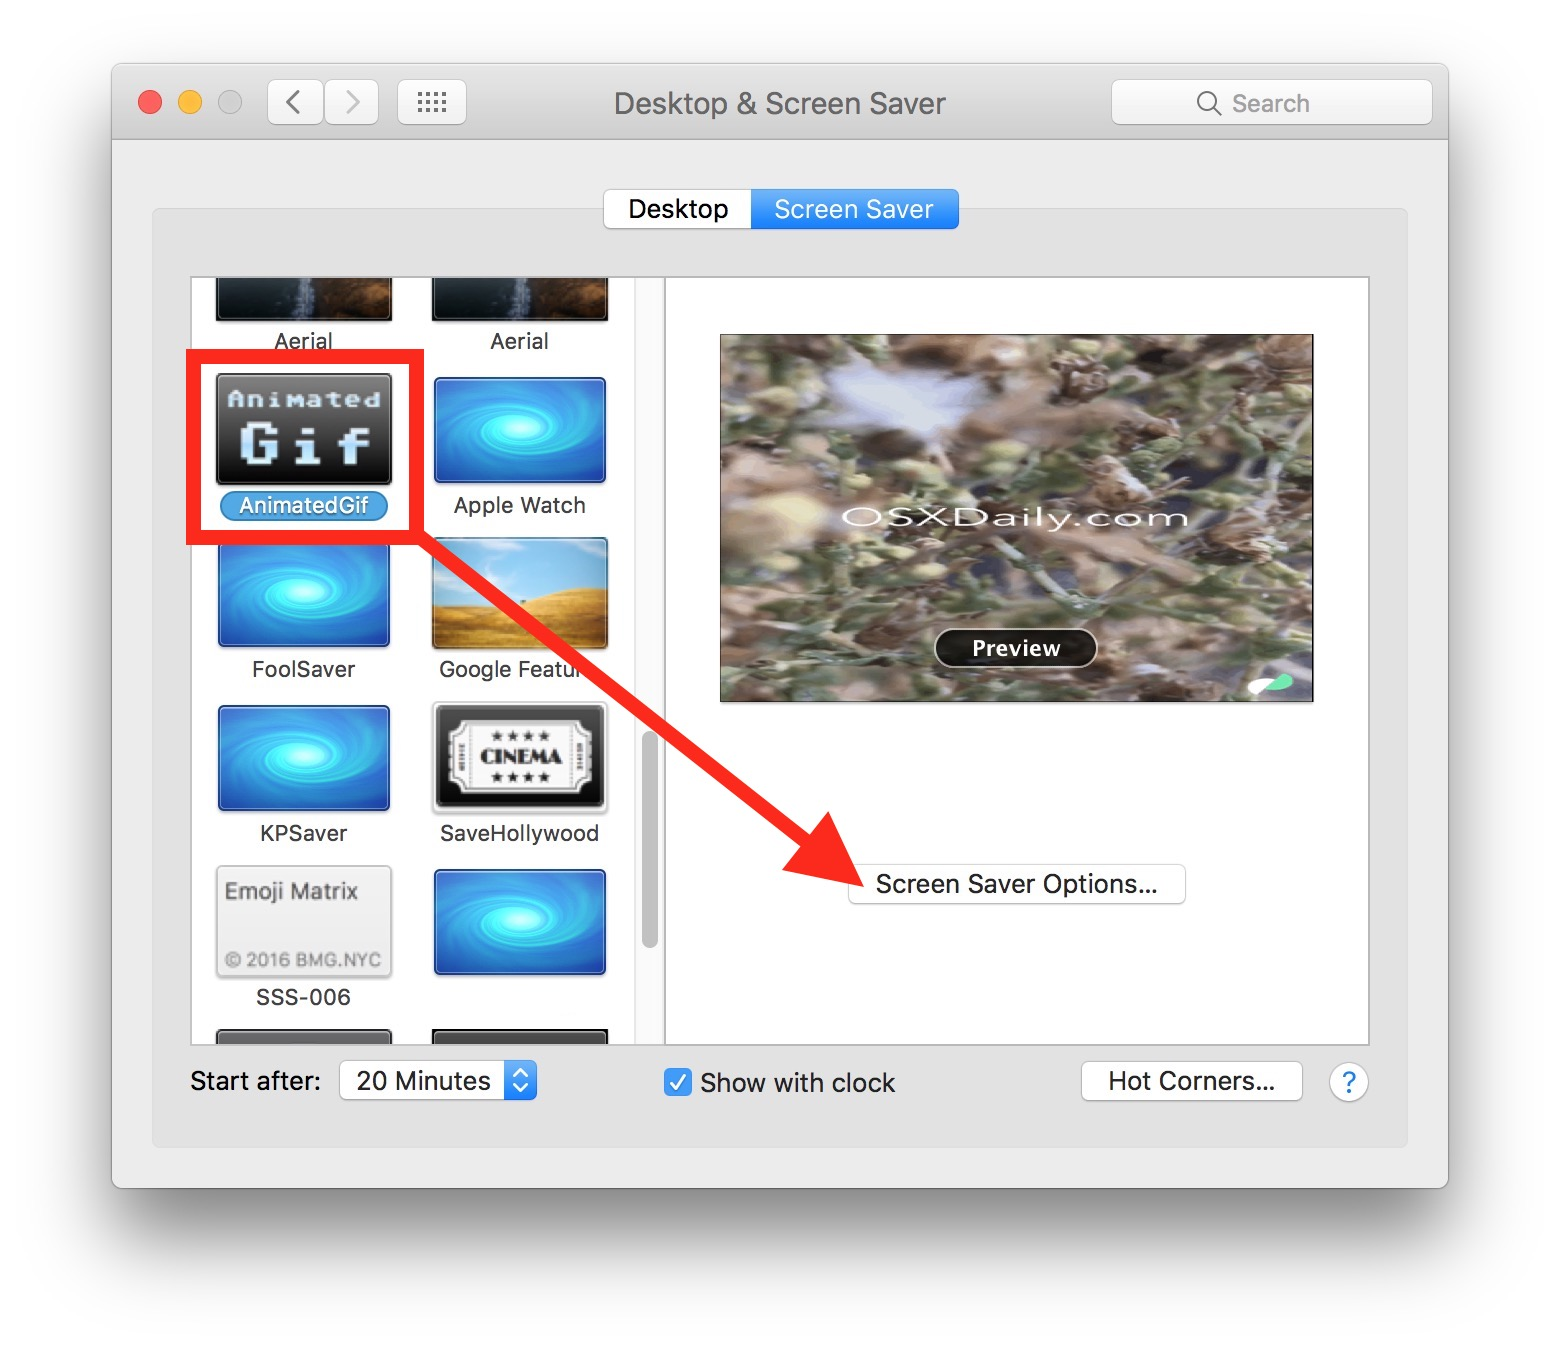 How to Set an Animated GIF as Screen